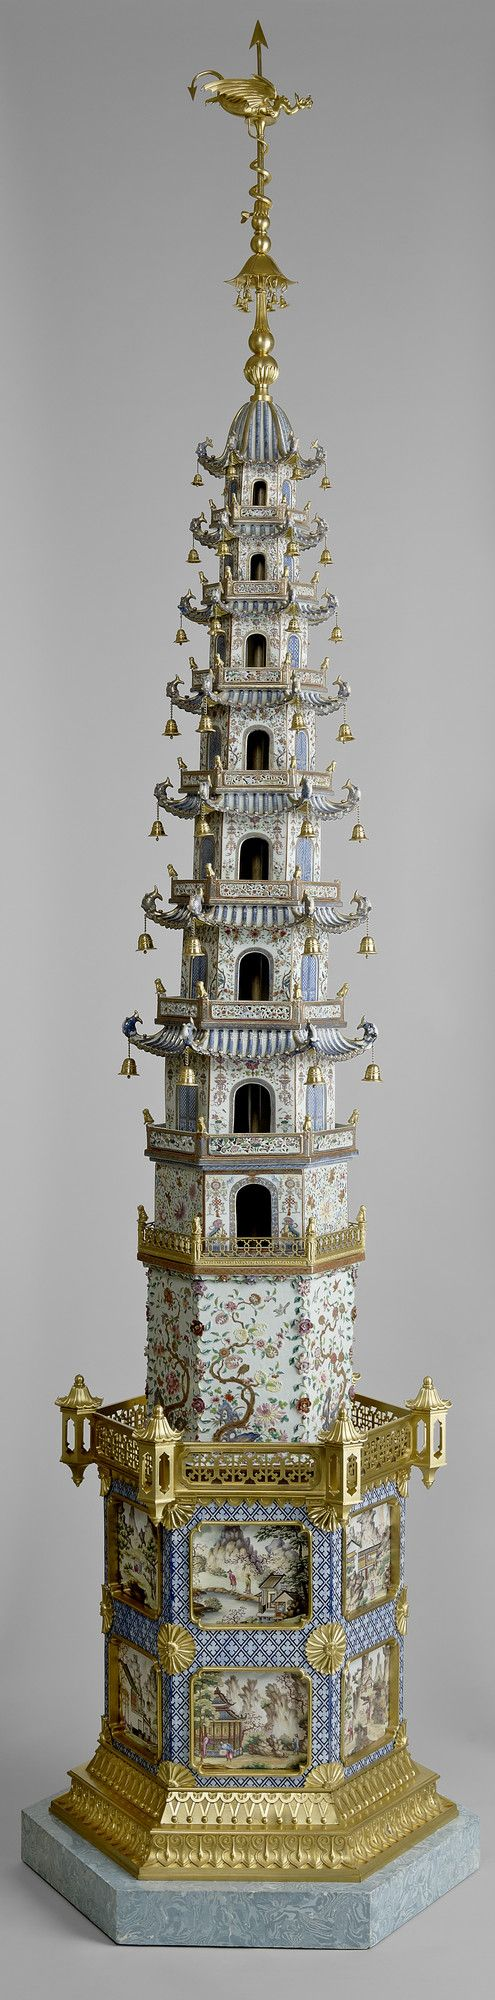 Two pagodas   China, c.1800-03 mount c.1817–20 Porcelain painted in underglaze blue, famille rose enamel colours and gilt, with additions of gilt bronze and enamelled pottery, 212.4 x 95.2 cm  Royal Collection Trust, RCIN 2400